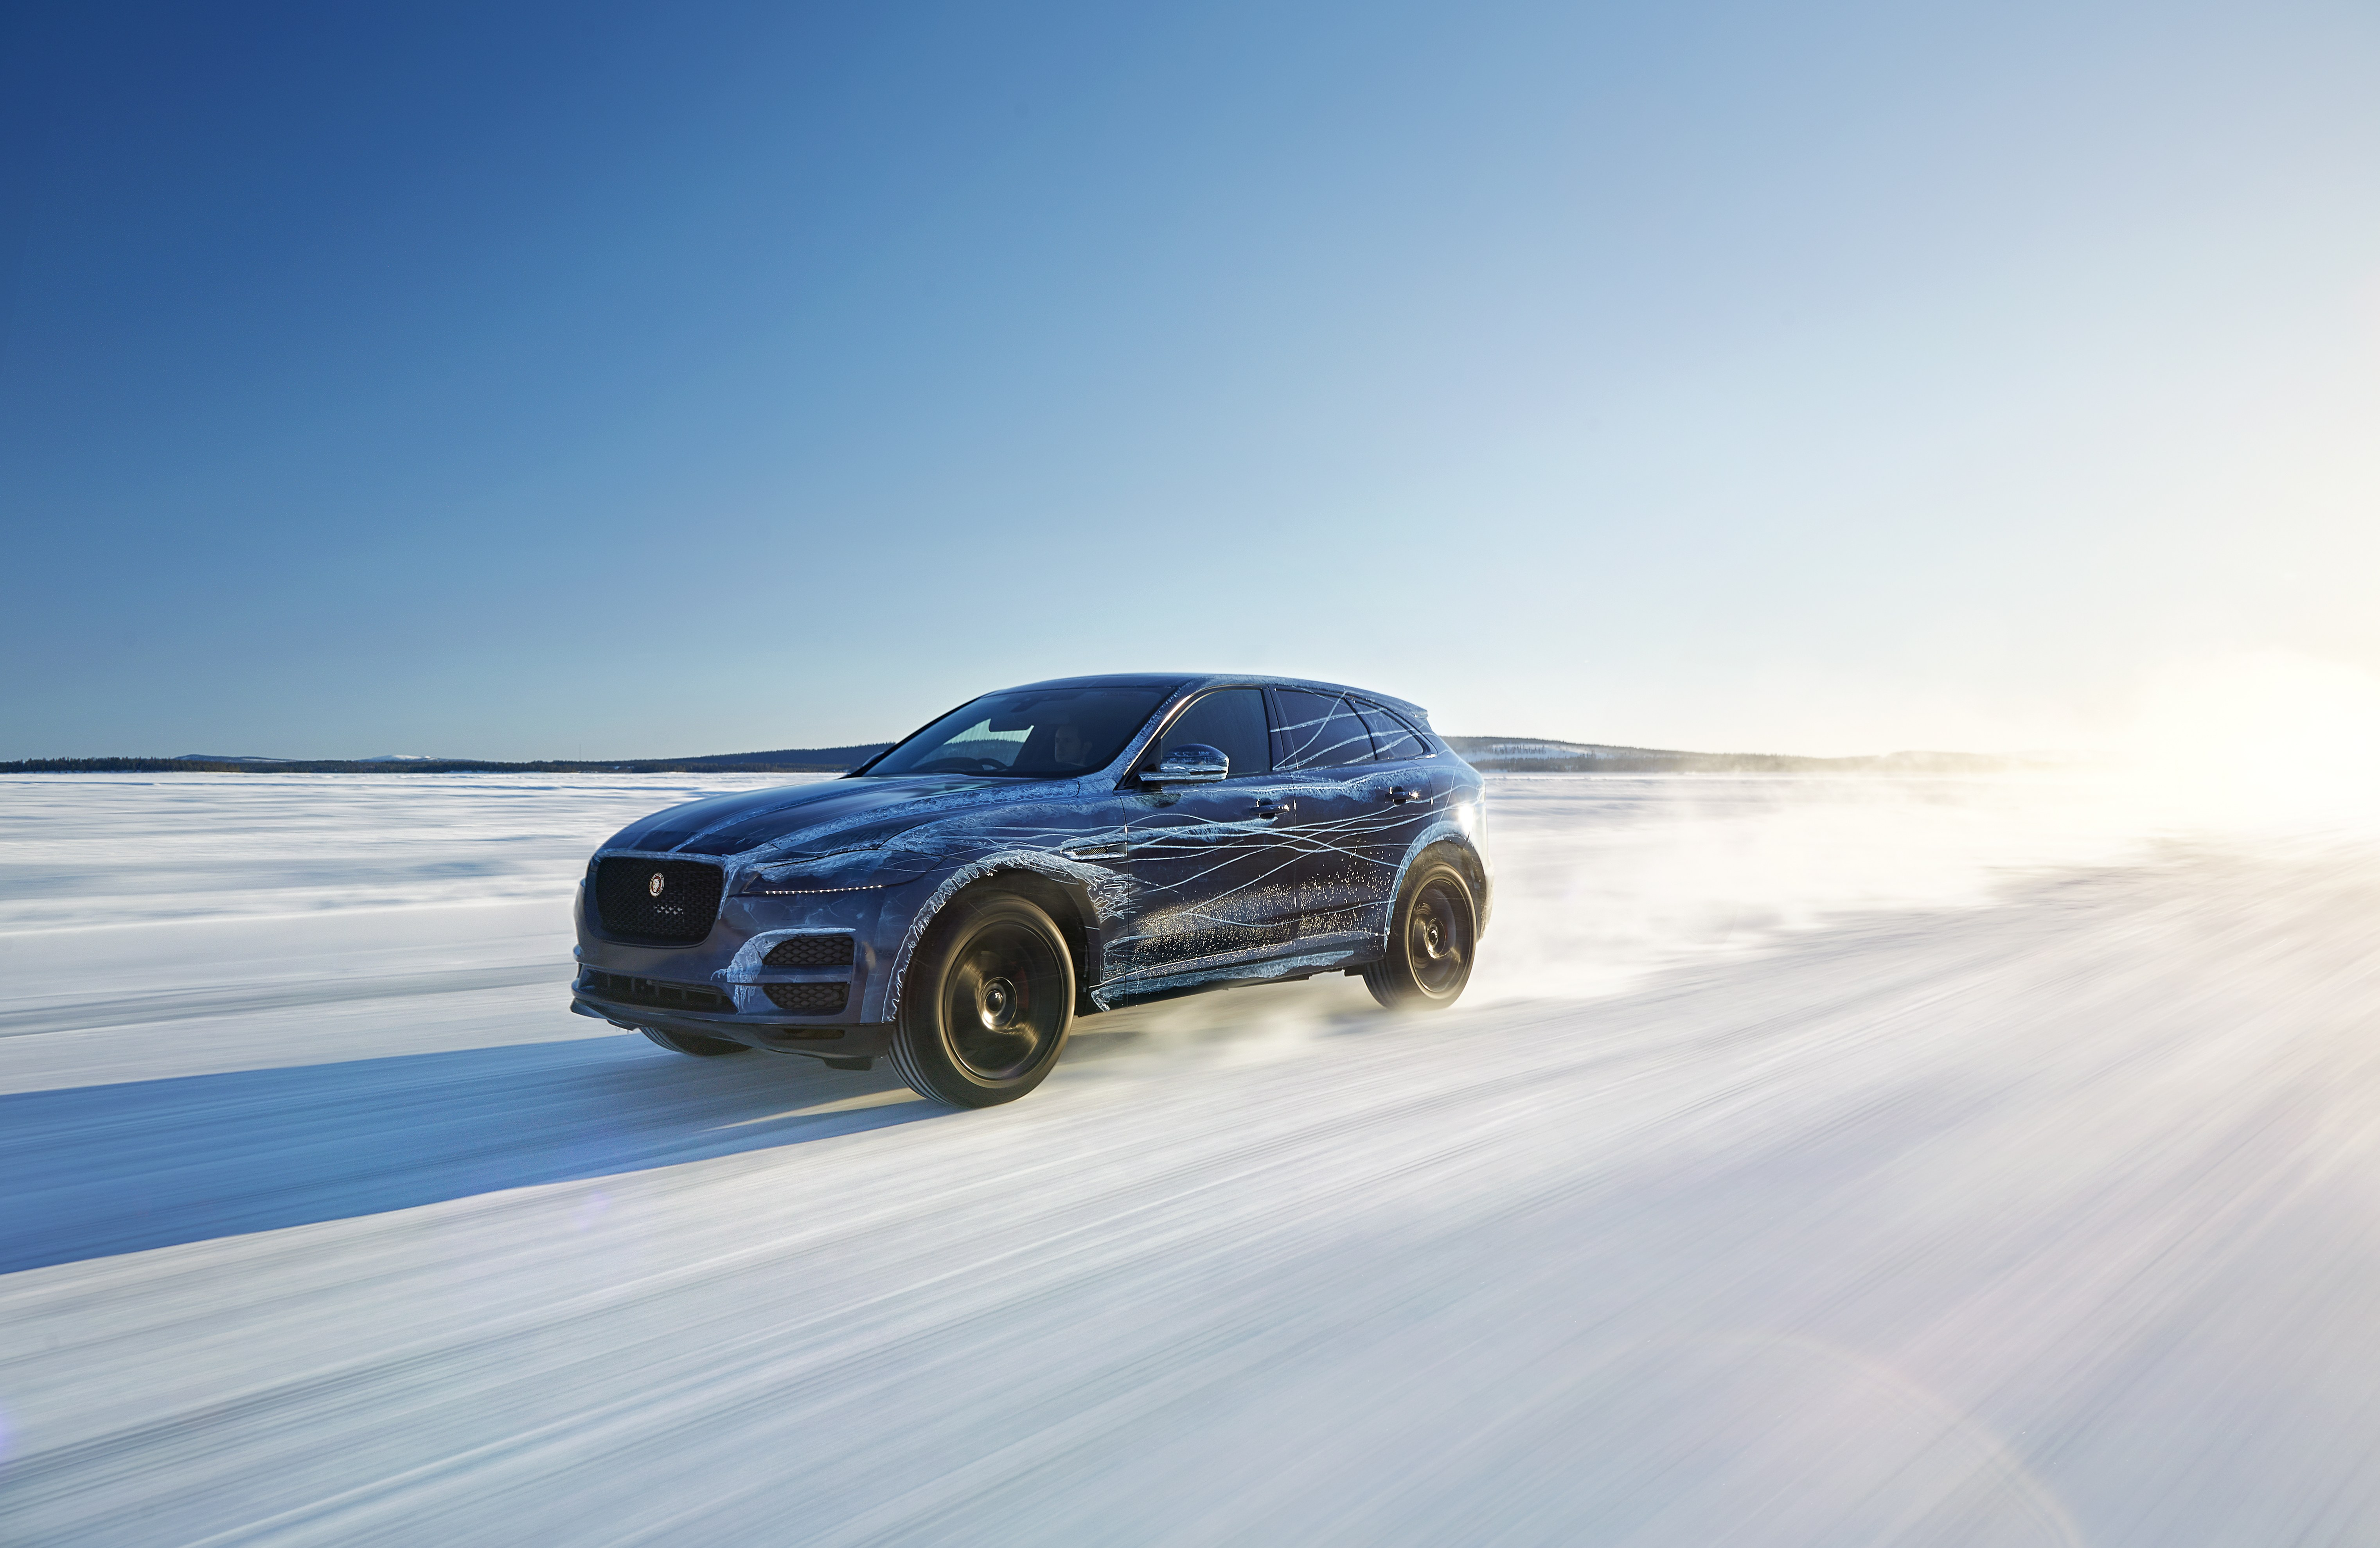 Jaguar F-Pace testing in the snow in Sweden.